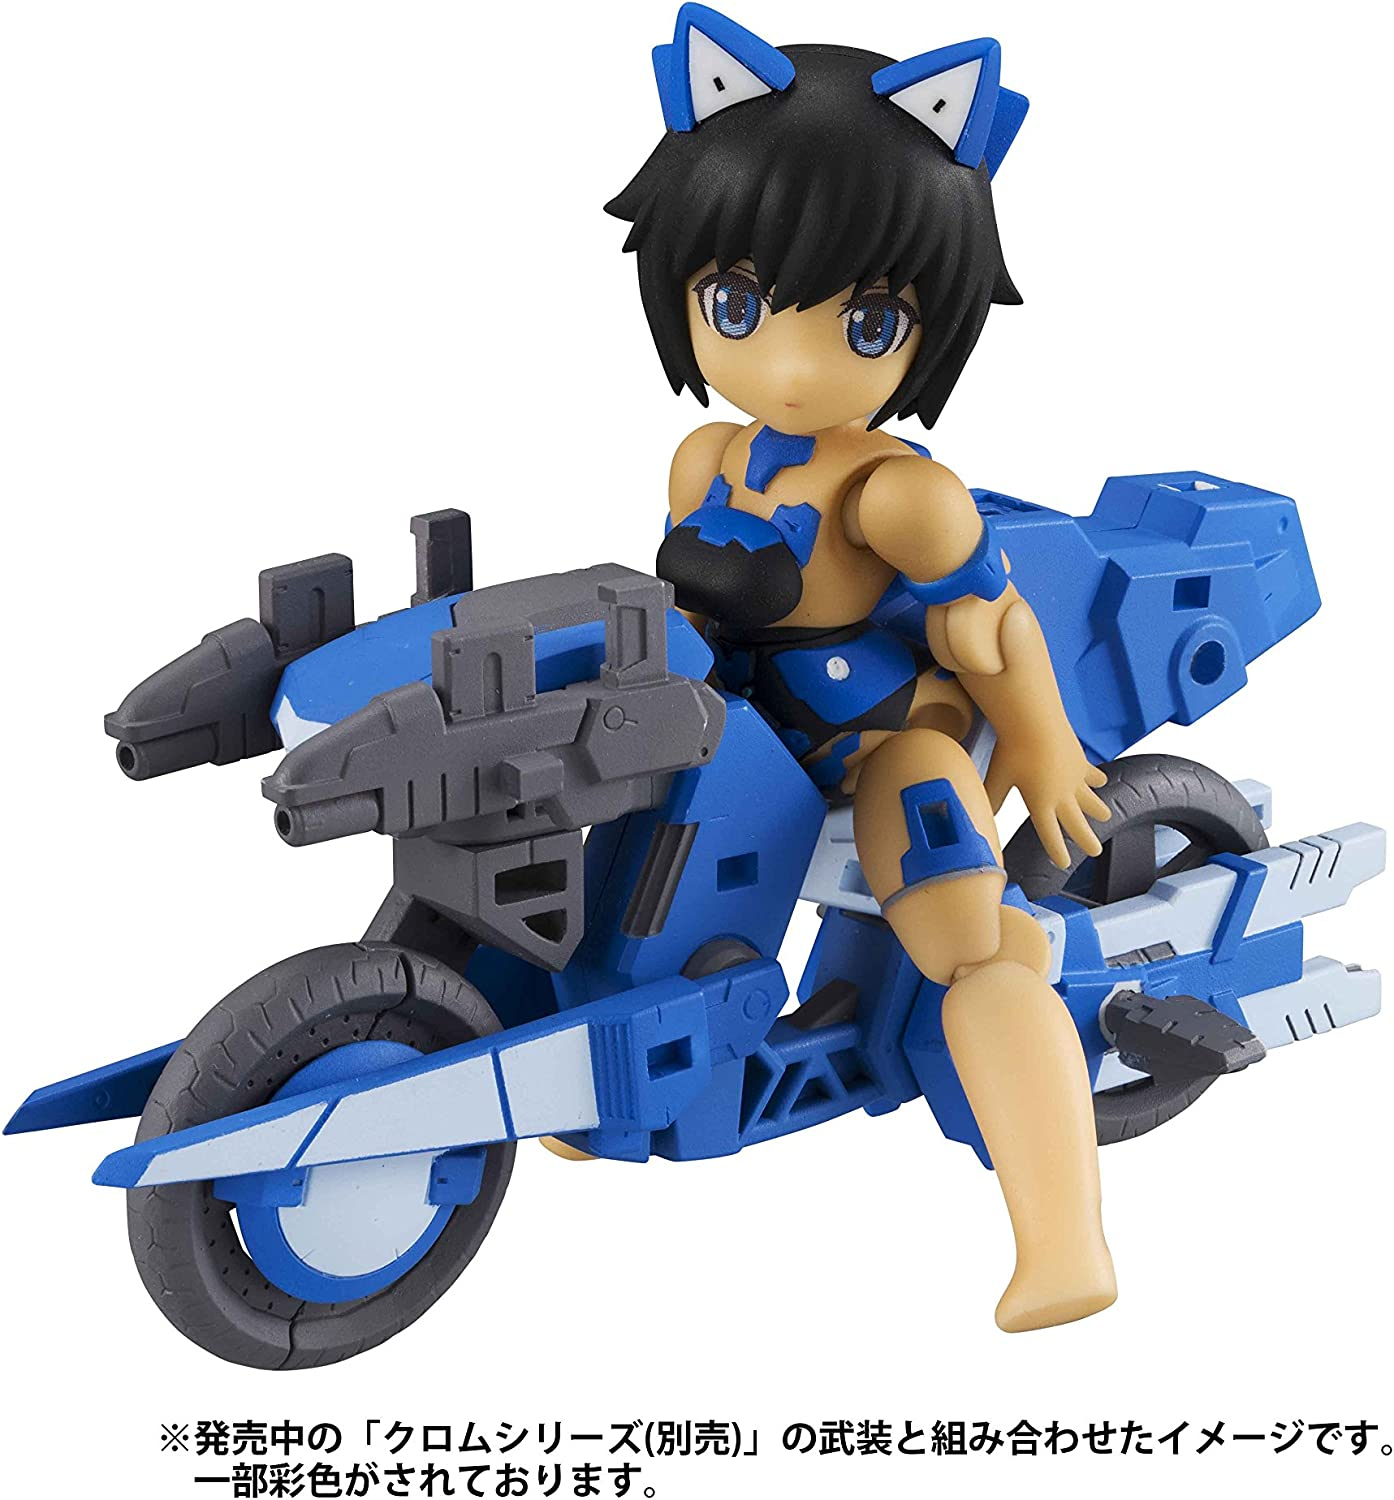 MegaHouse Desktop Army Frame Arms Girl KT-322f Innocentia Series Set of 4 Figure